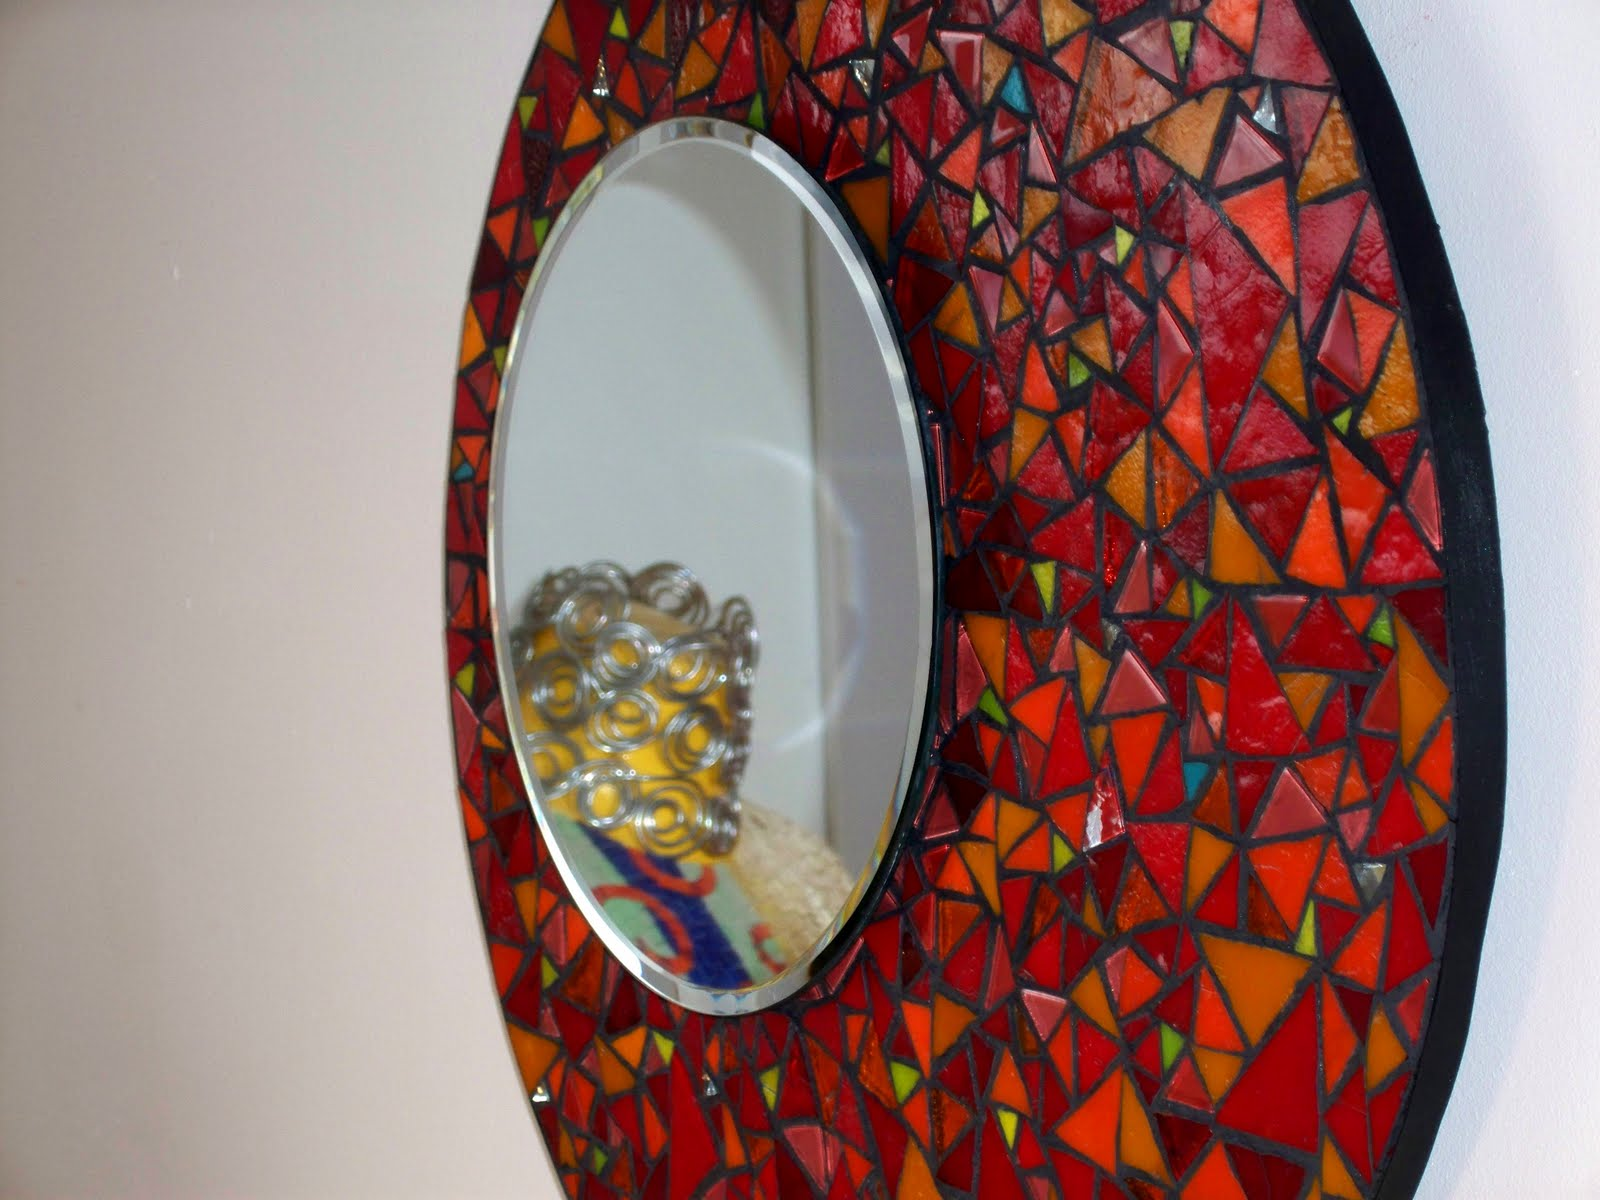 Mosaics mes derni res cr ations for Mosaique miroir